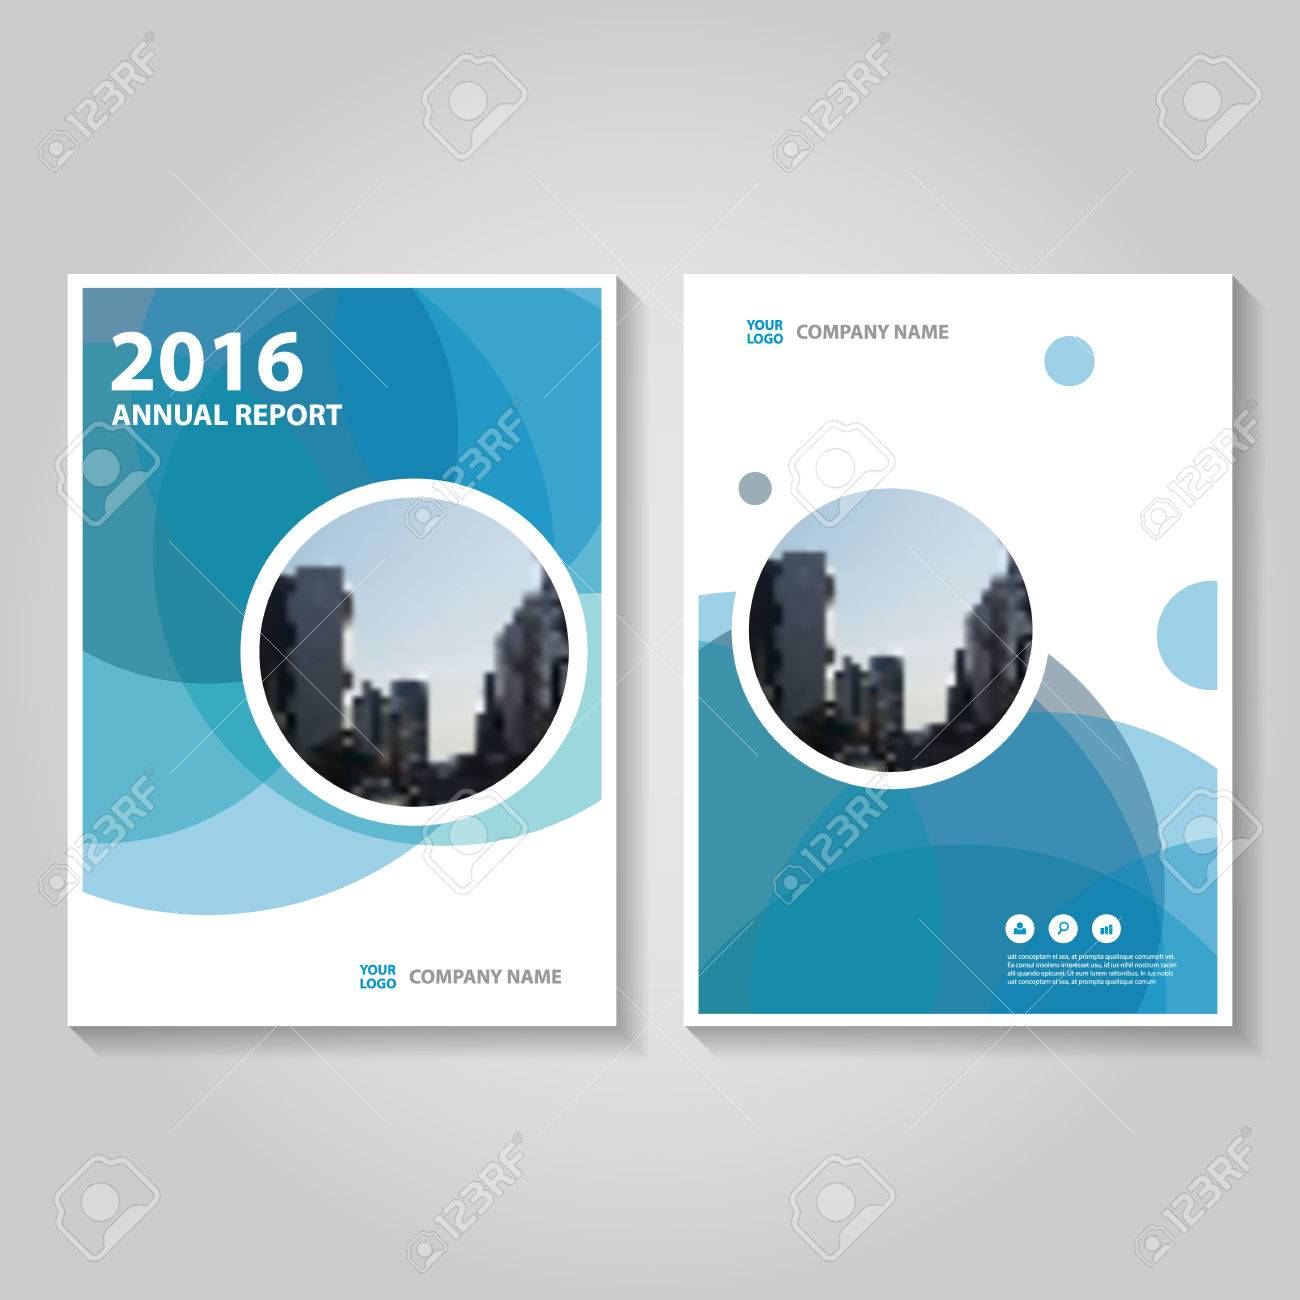 Circle Blue Polygon Annual Report Leaflet Brochure Template Design     Circle blue polygon annual report Leaflet Brochure template design  book  cover layout design  Abstract